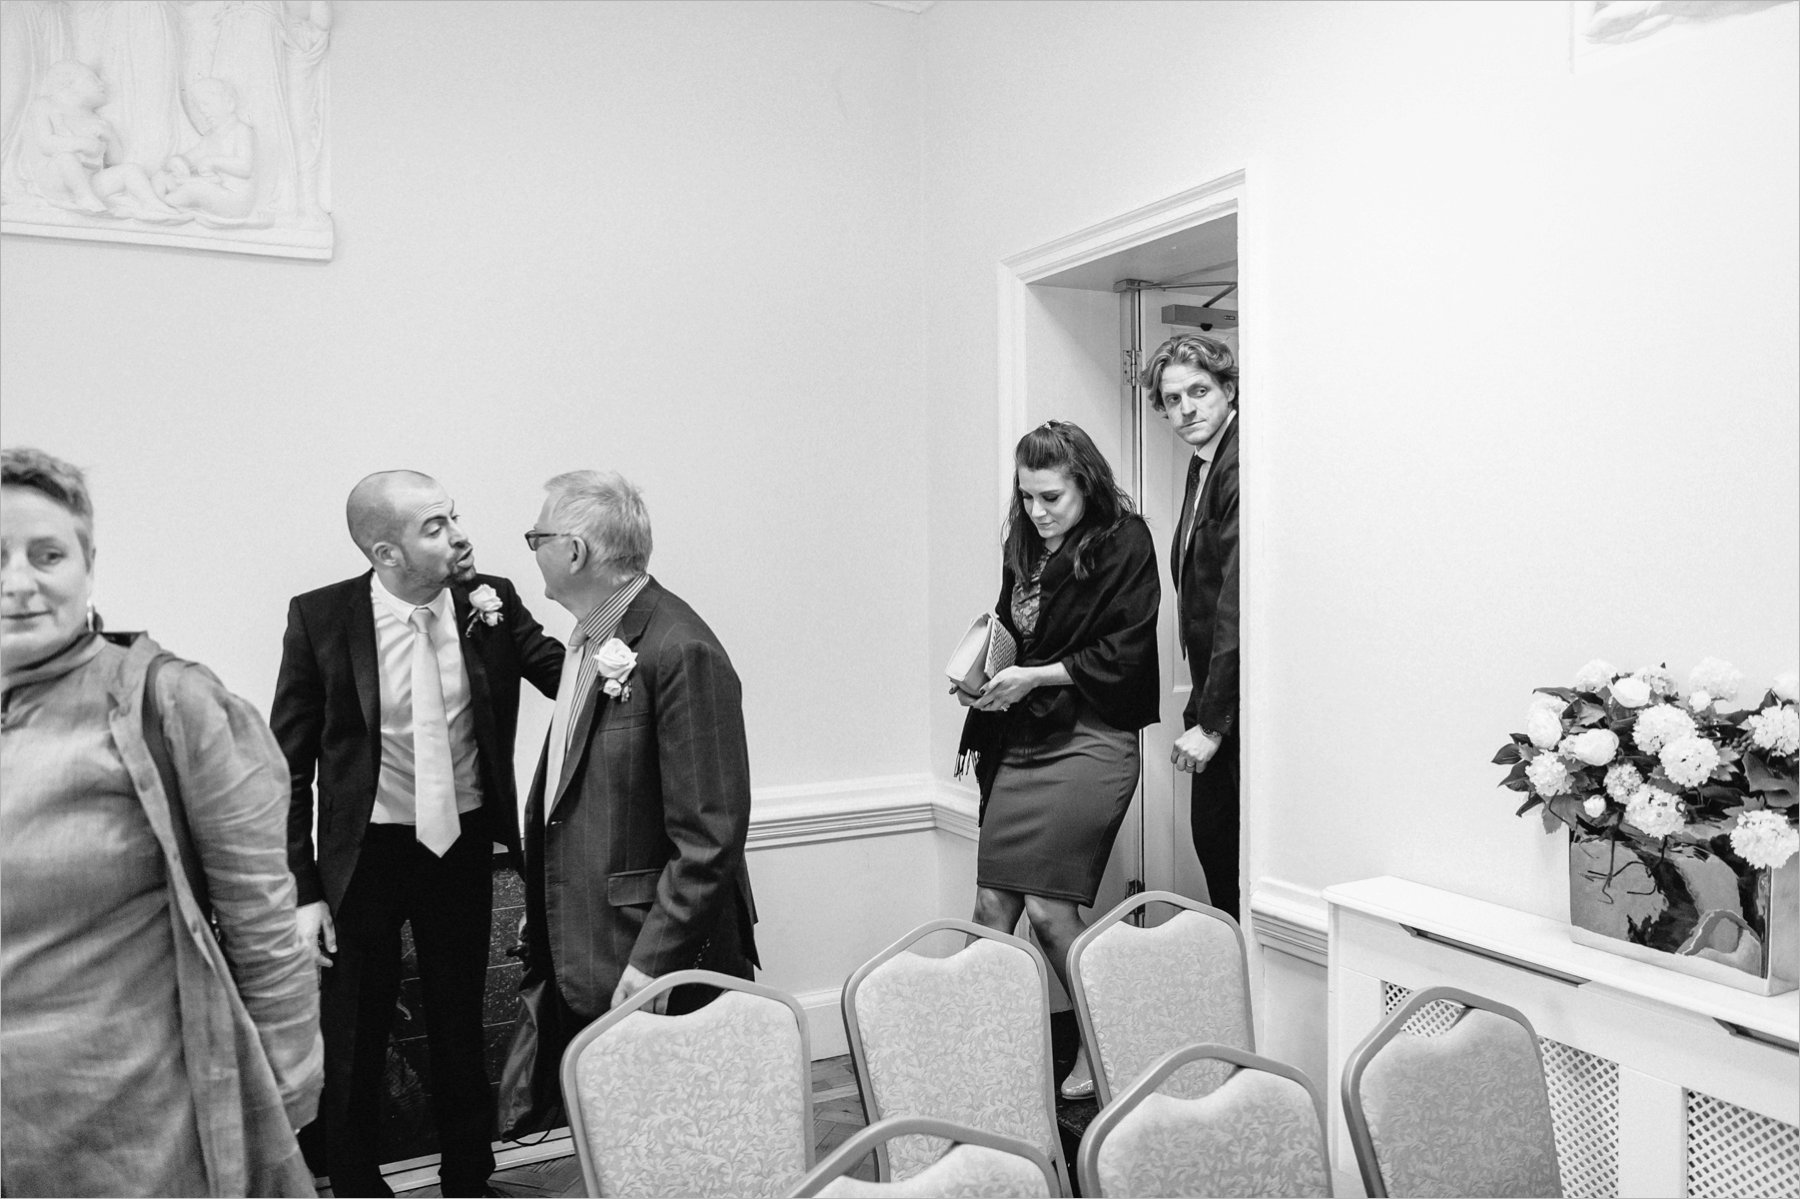 guests enter the ceremony room